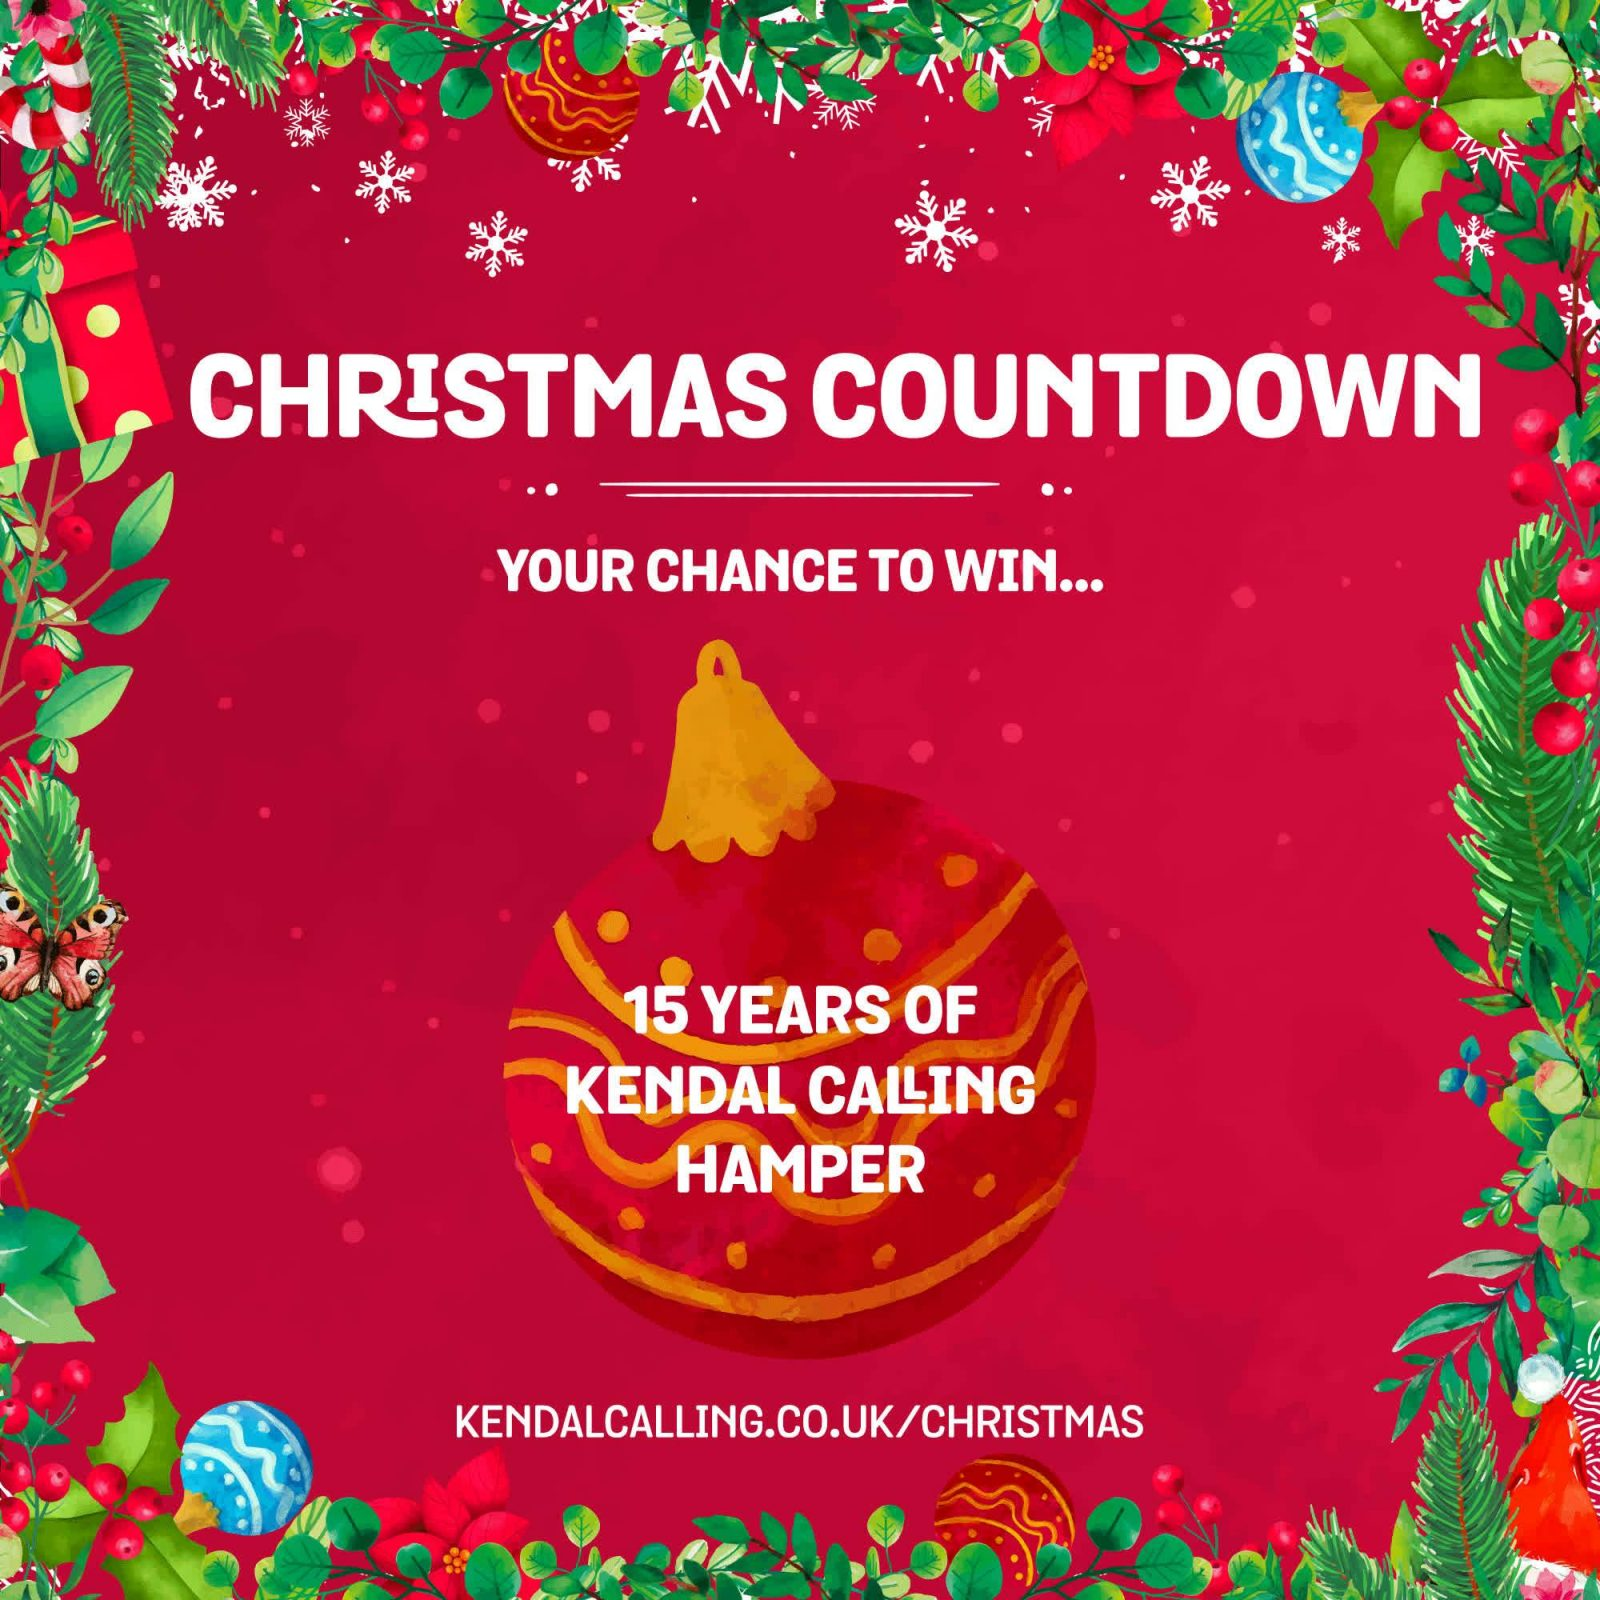 Our Kendal Calling Christmas countdown is here! Your chance to win some of the f...